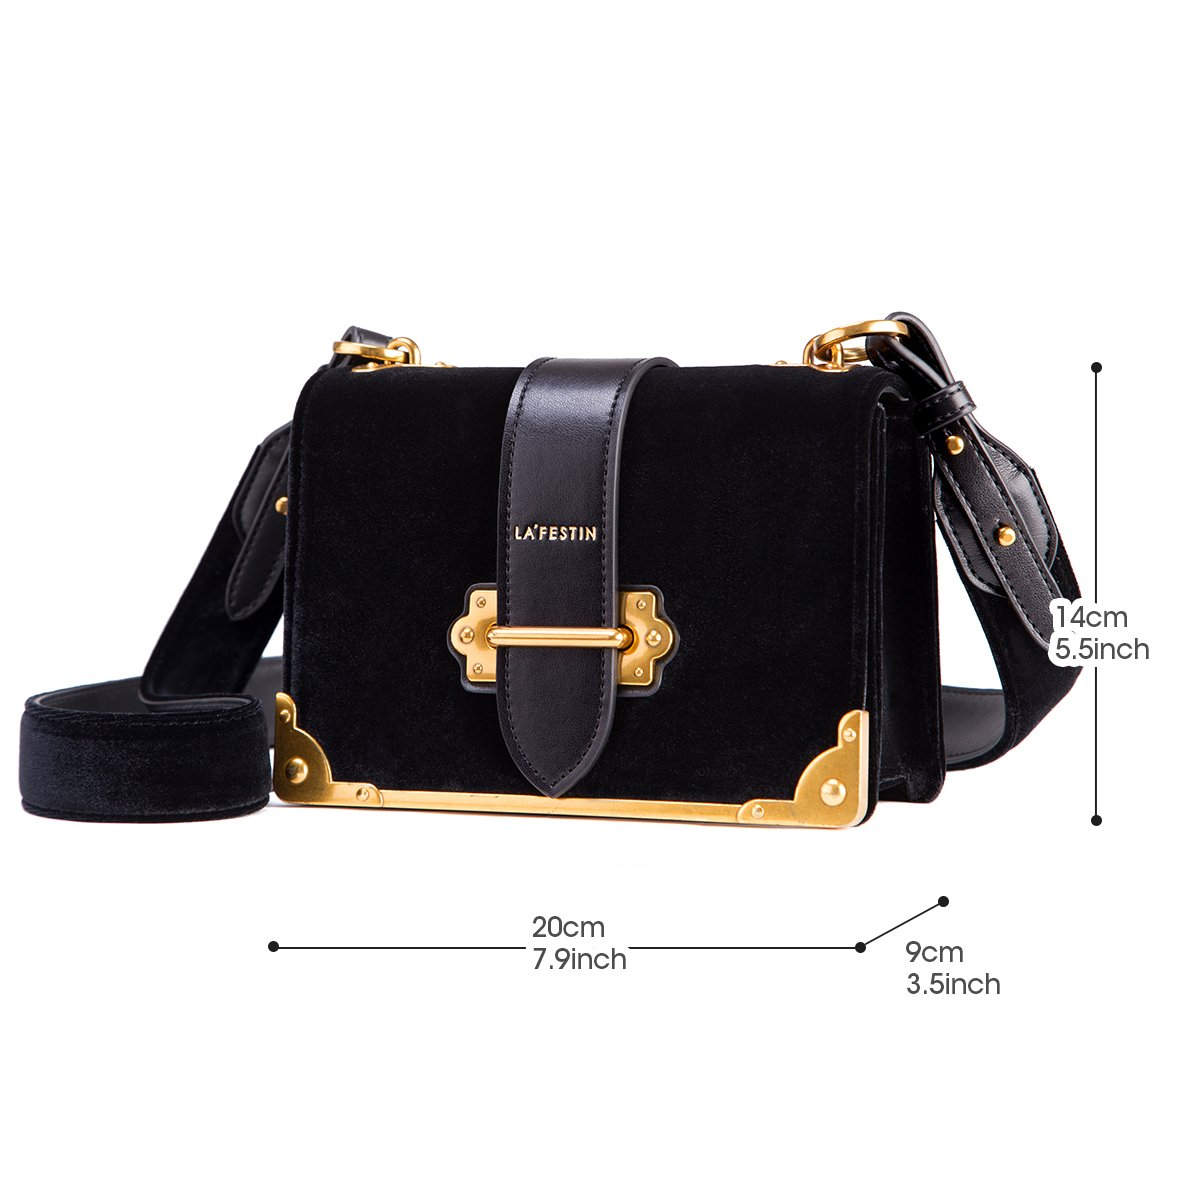 9711fcc2b8e0 Amazon.com  LA FESTIN Velvet Leather Shoulder Bag for Ladies Cross Body  Handbag Black  Shoes